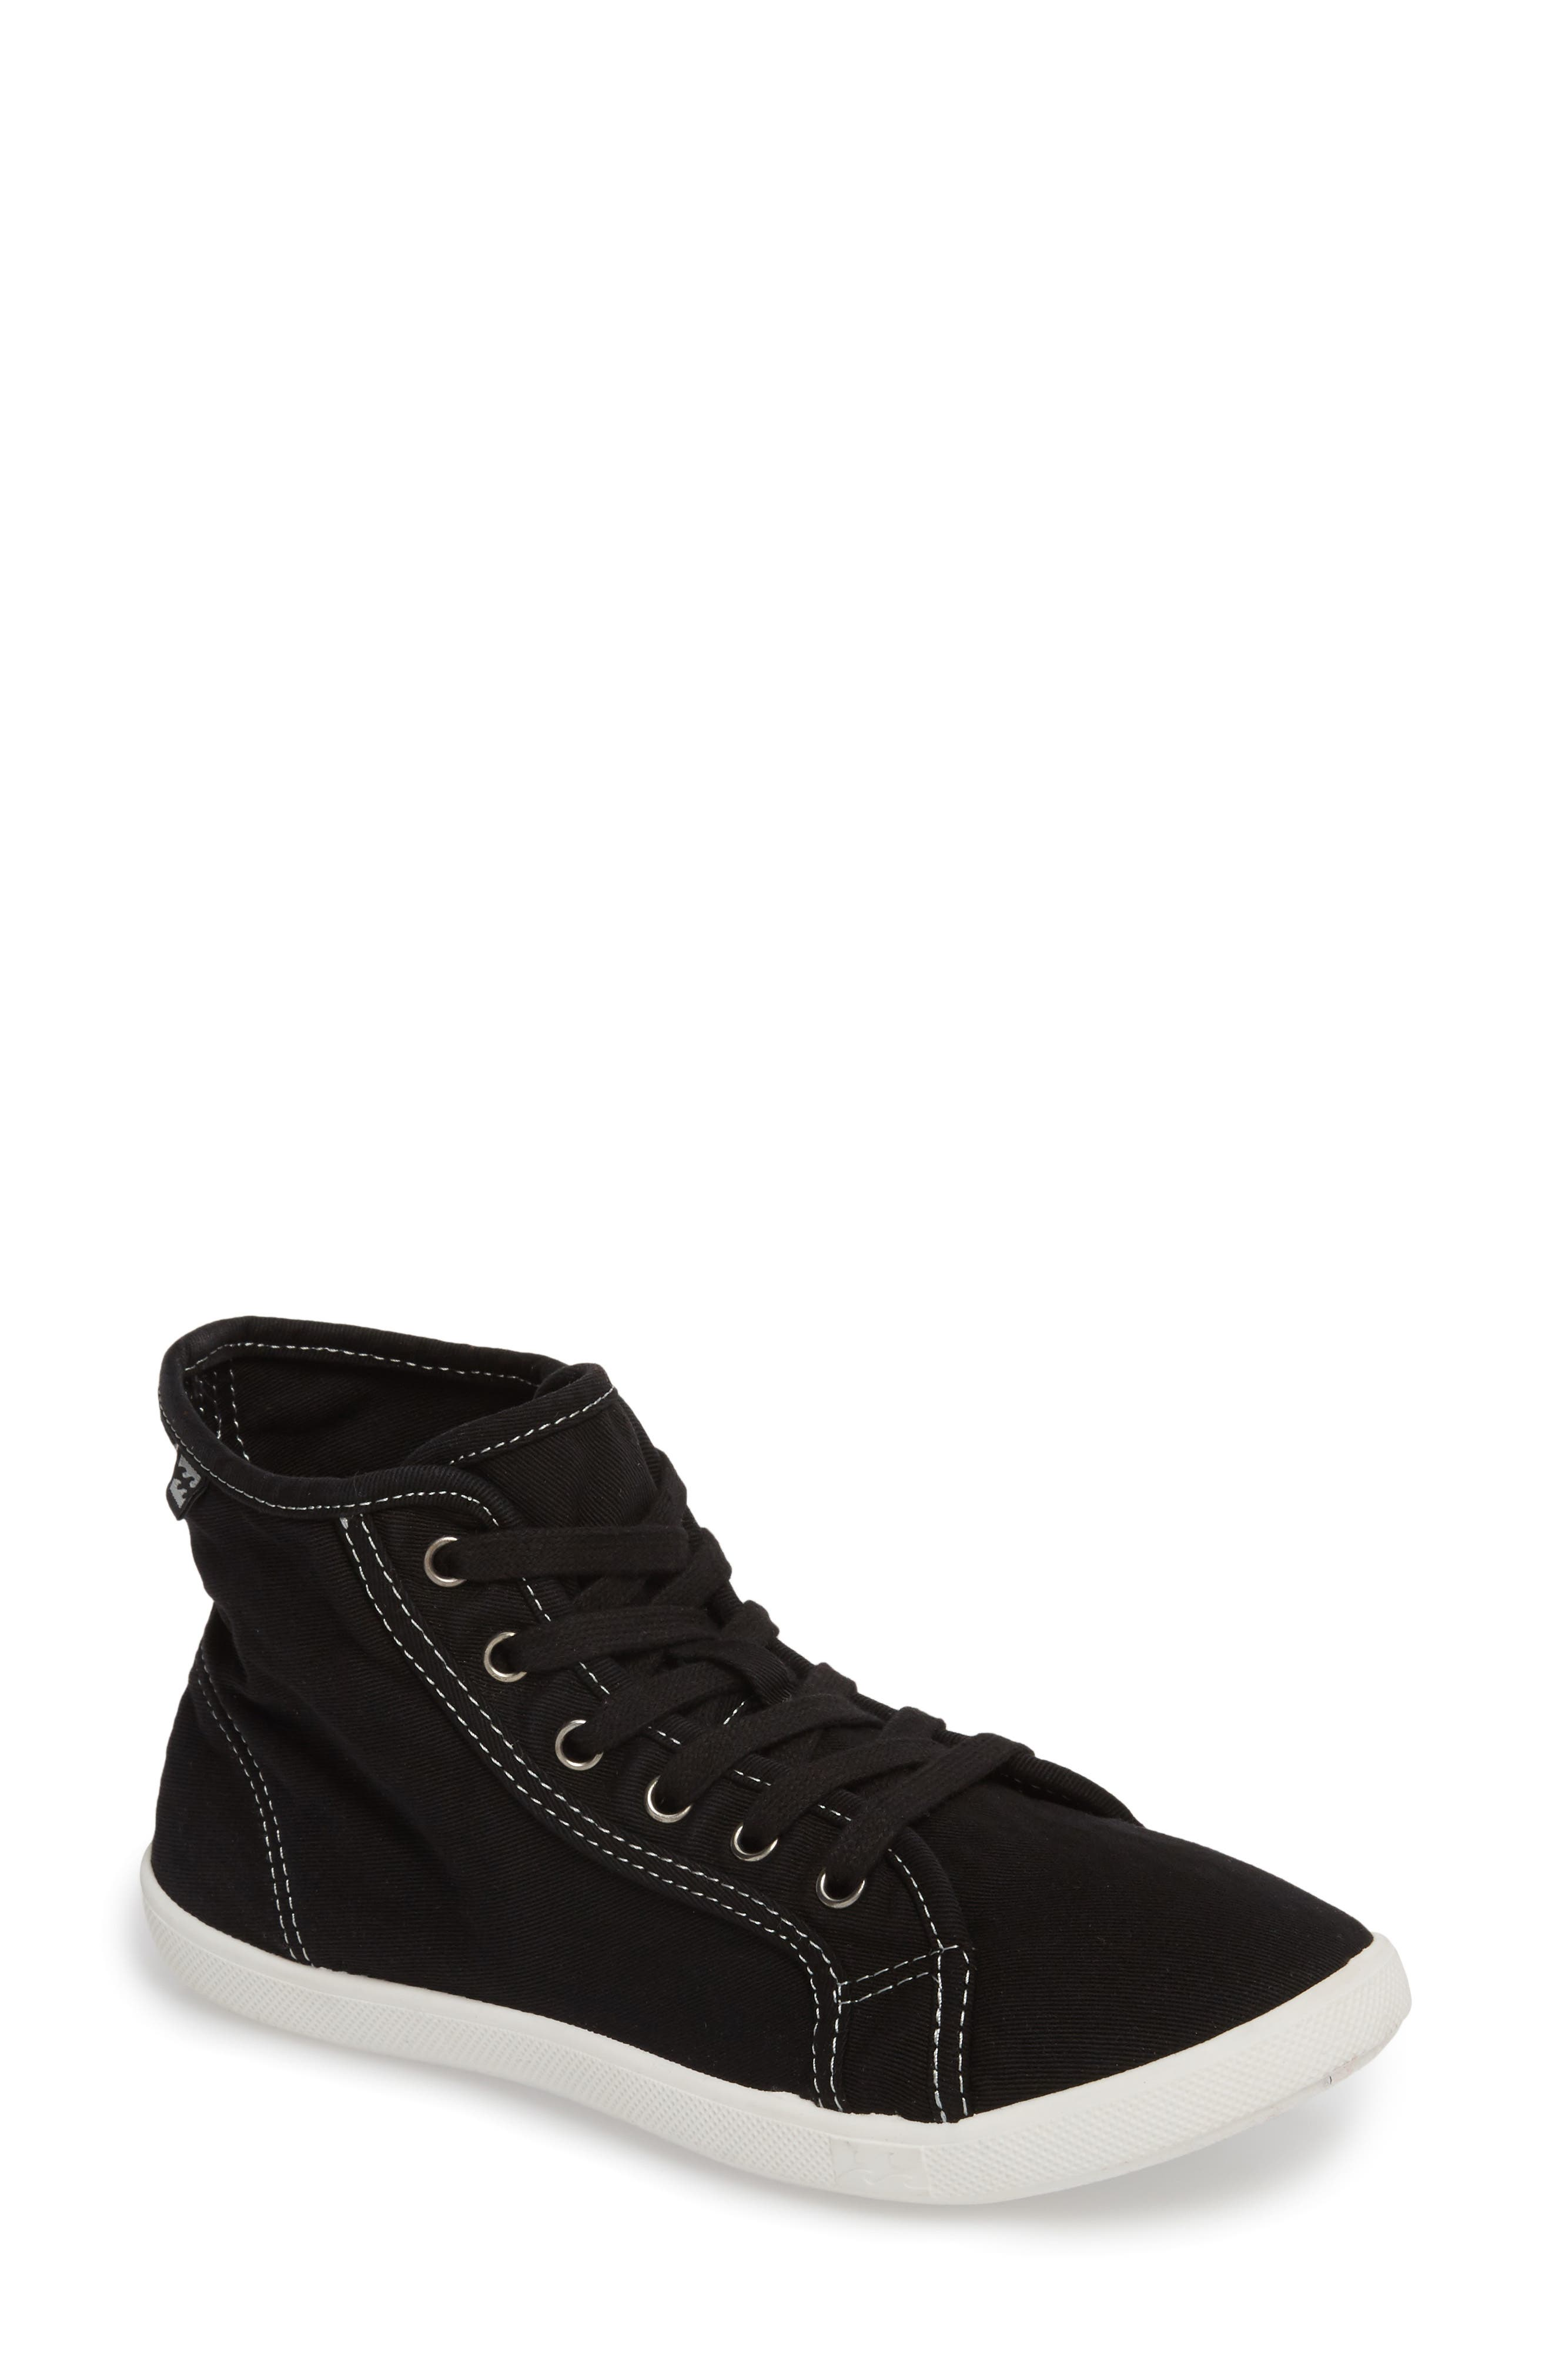 Billabong Phoenix Sneaker (Women)